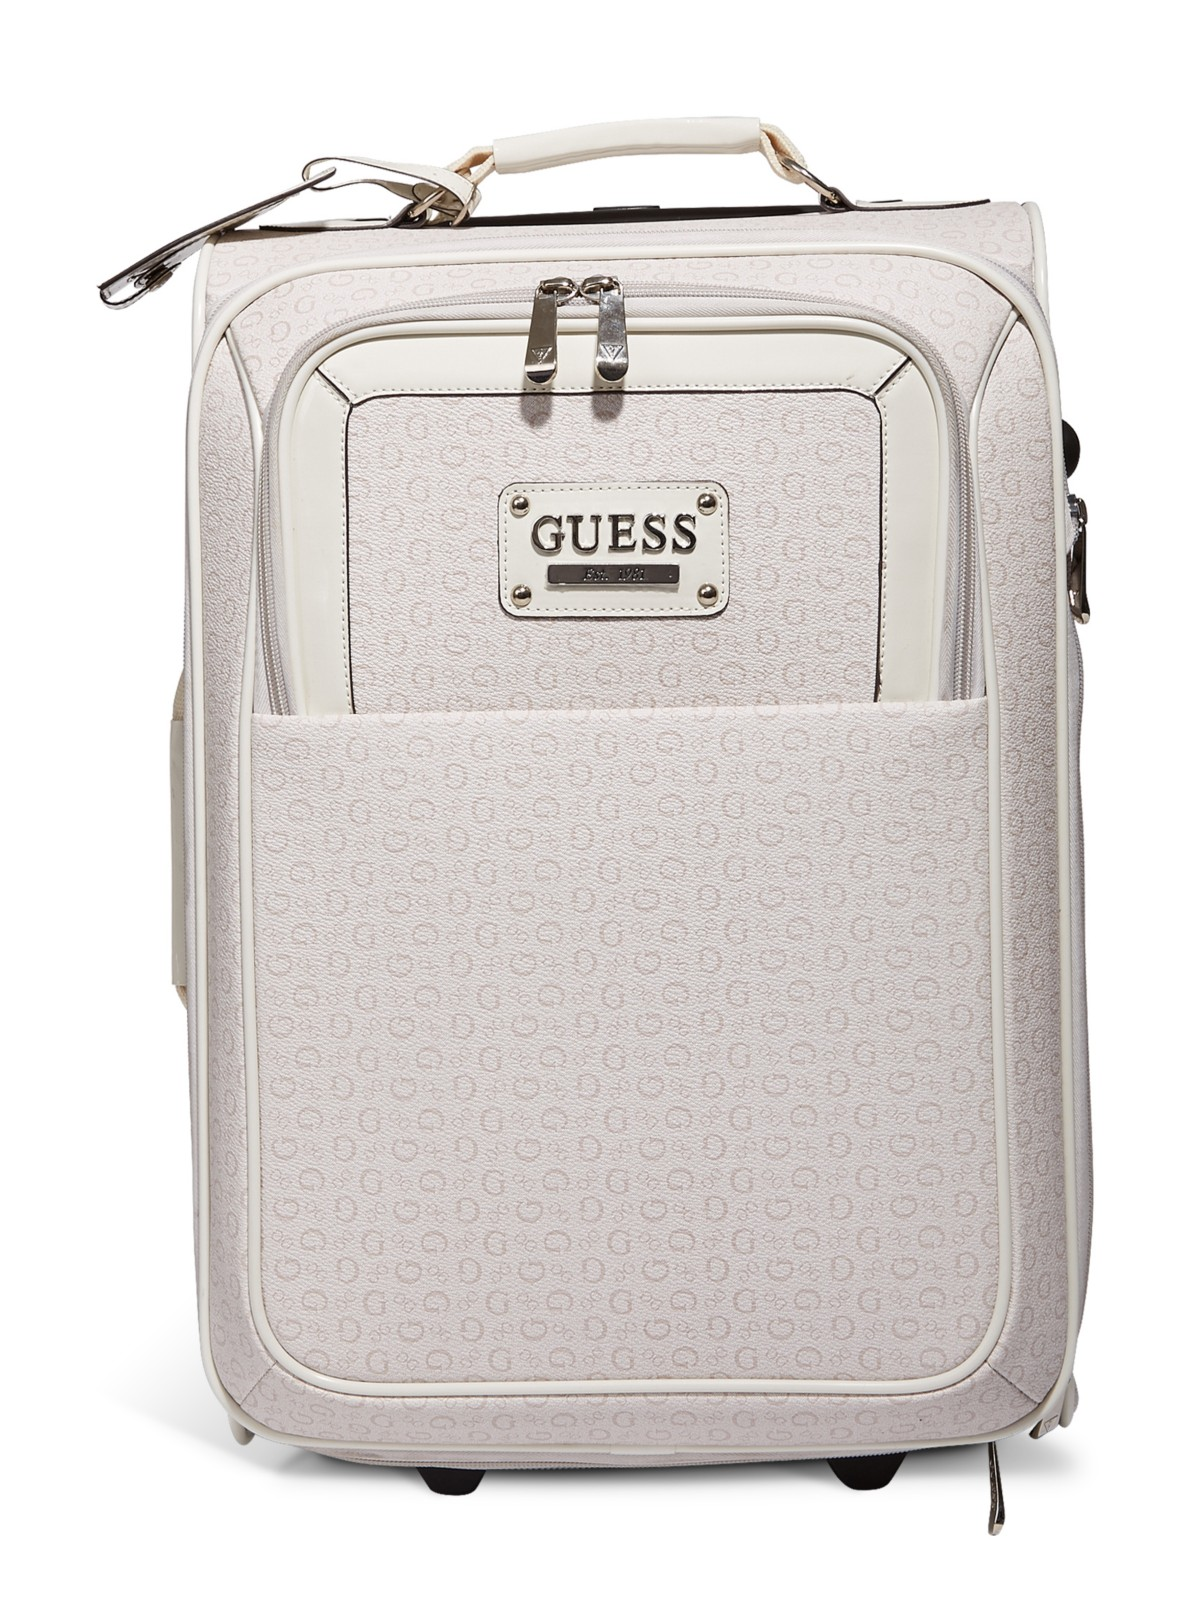 Guess Travel Luggage Bags